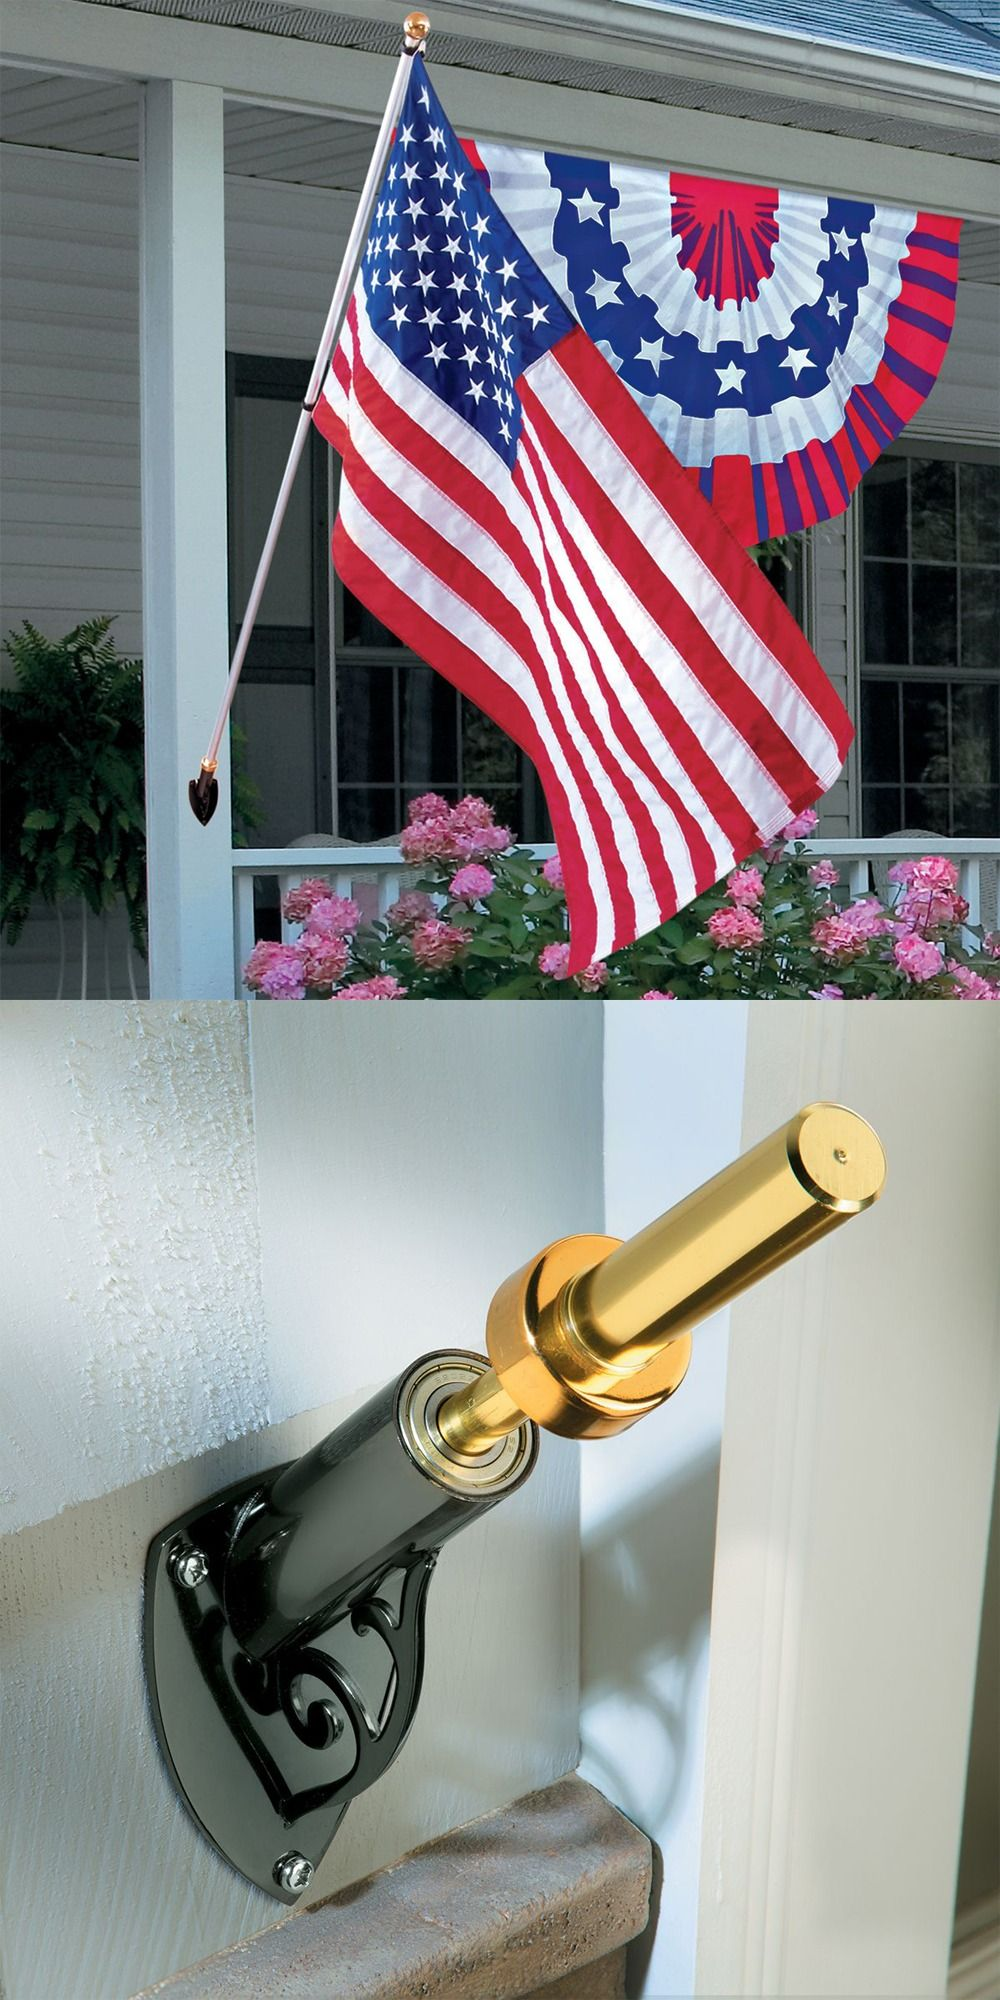 Prevent Your American Flag From Tangling With A House Flag Holder